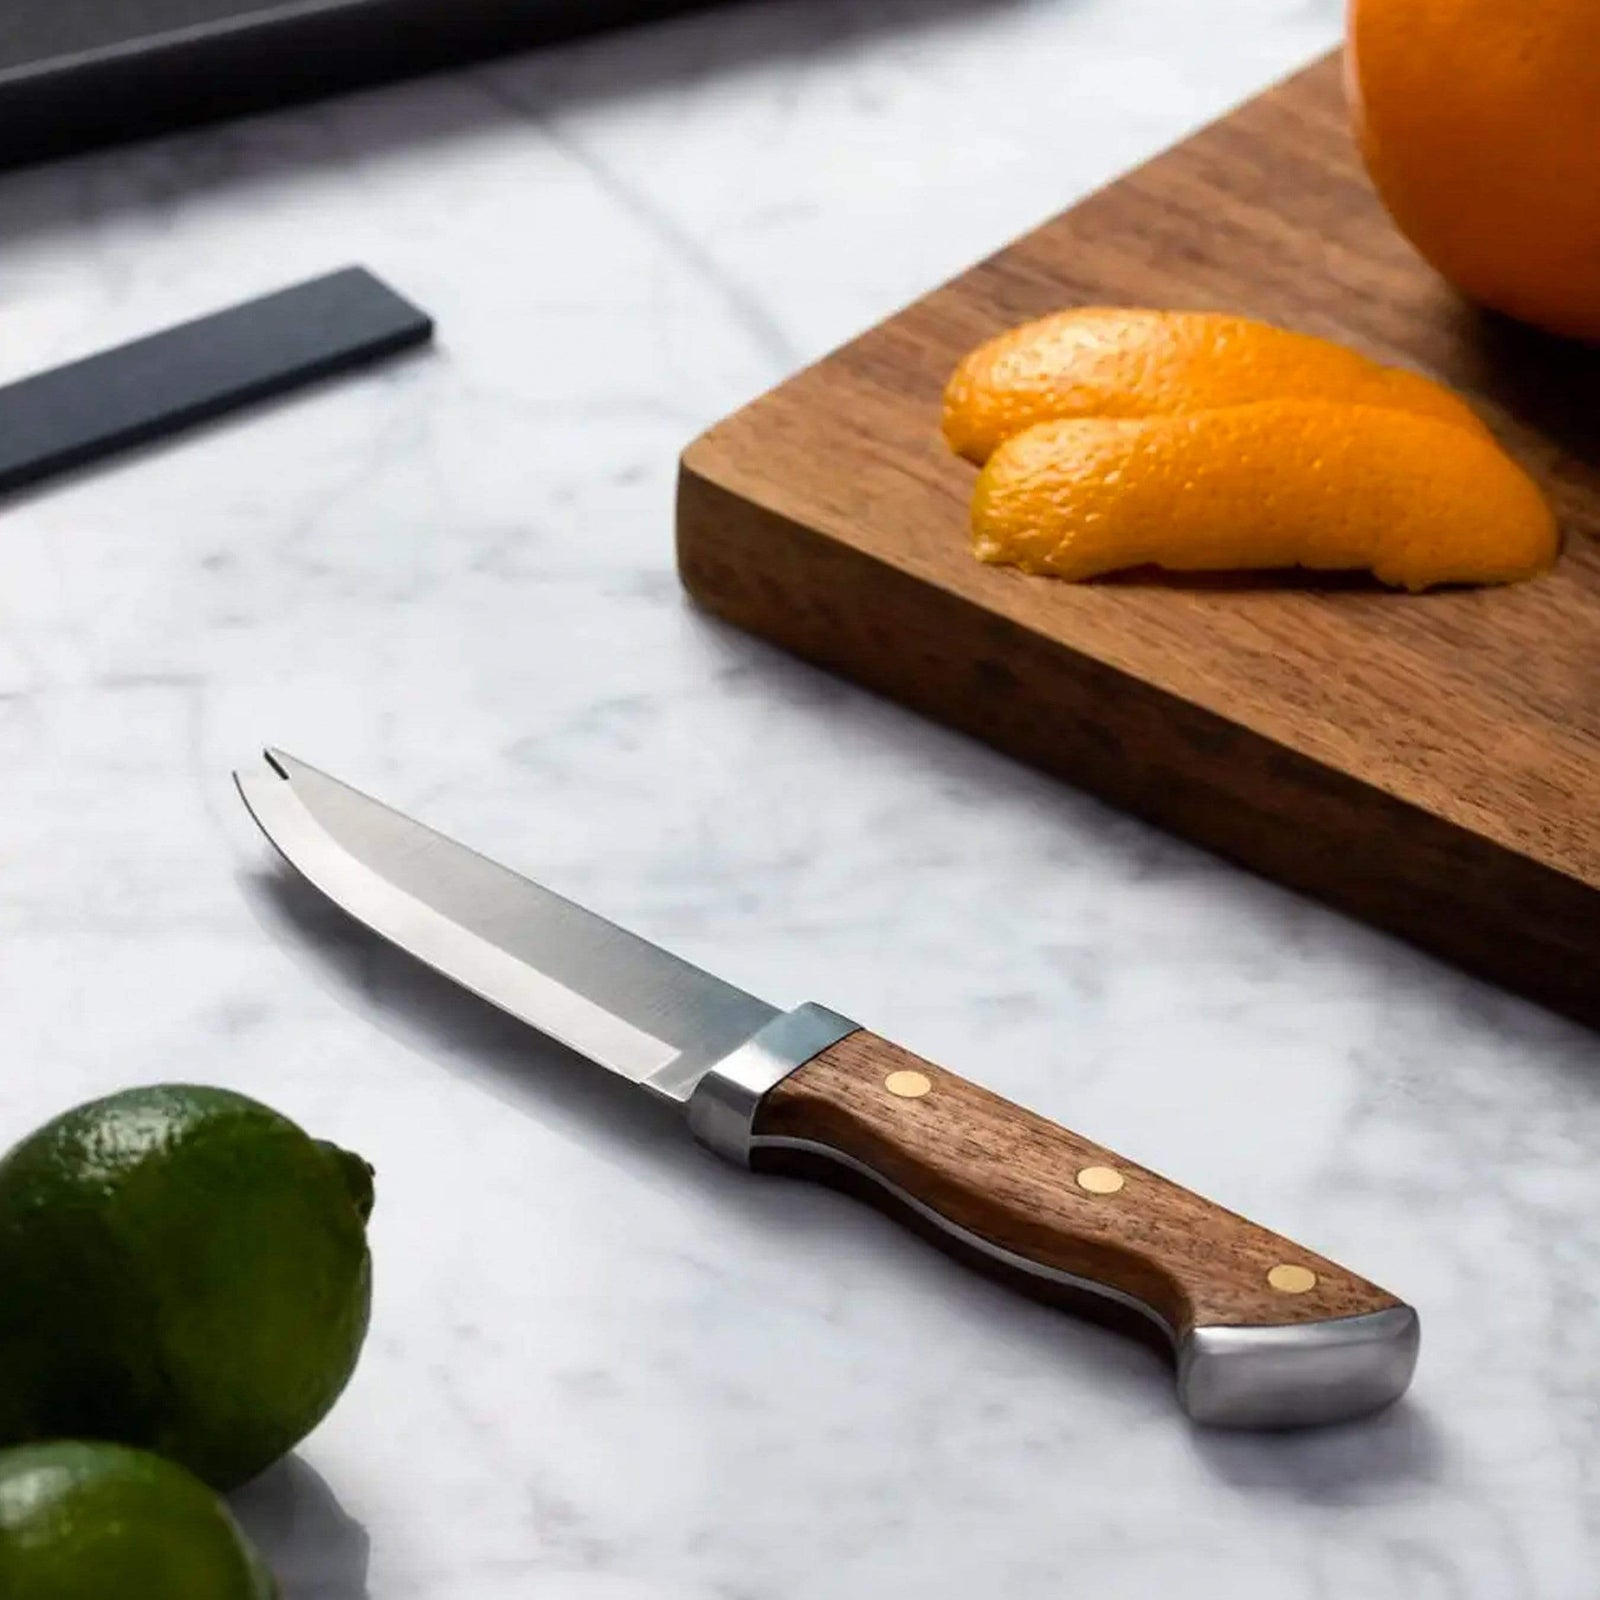 W&P Kitchenware The Bartender's Knife